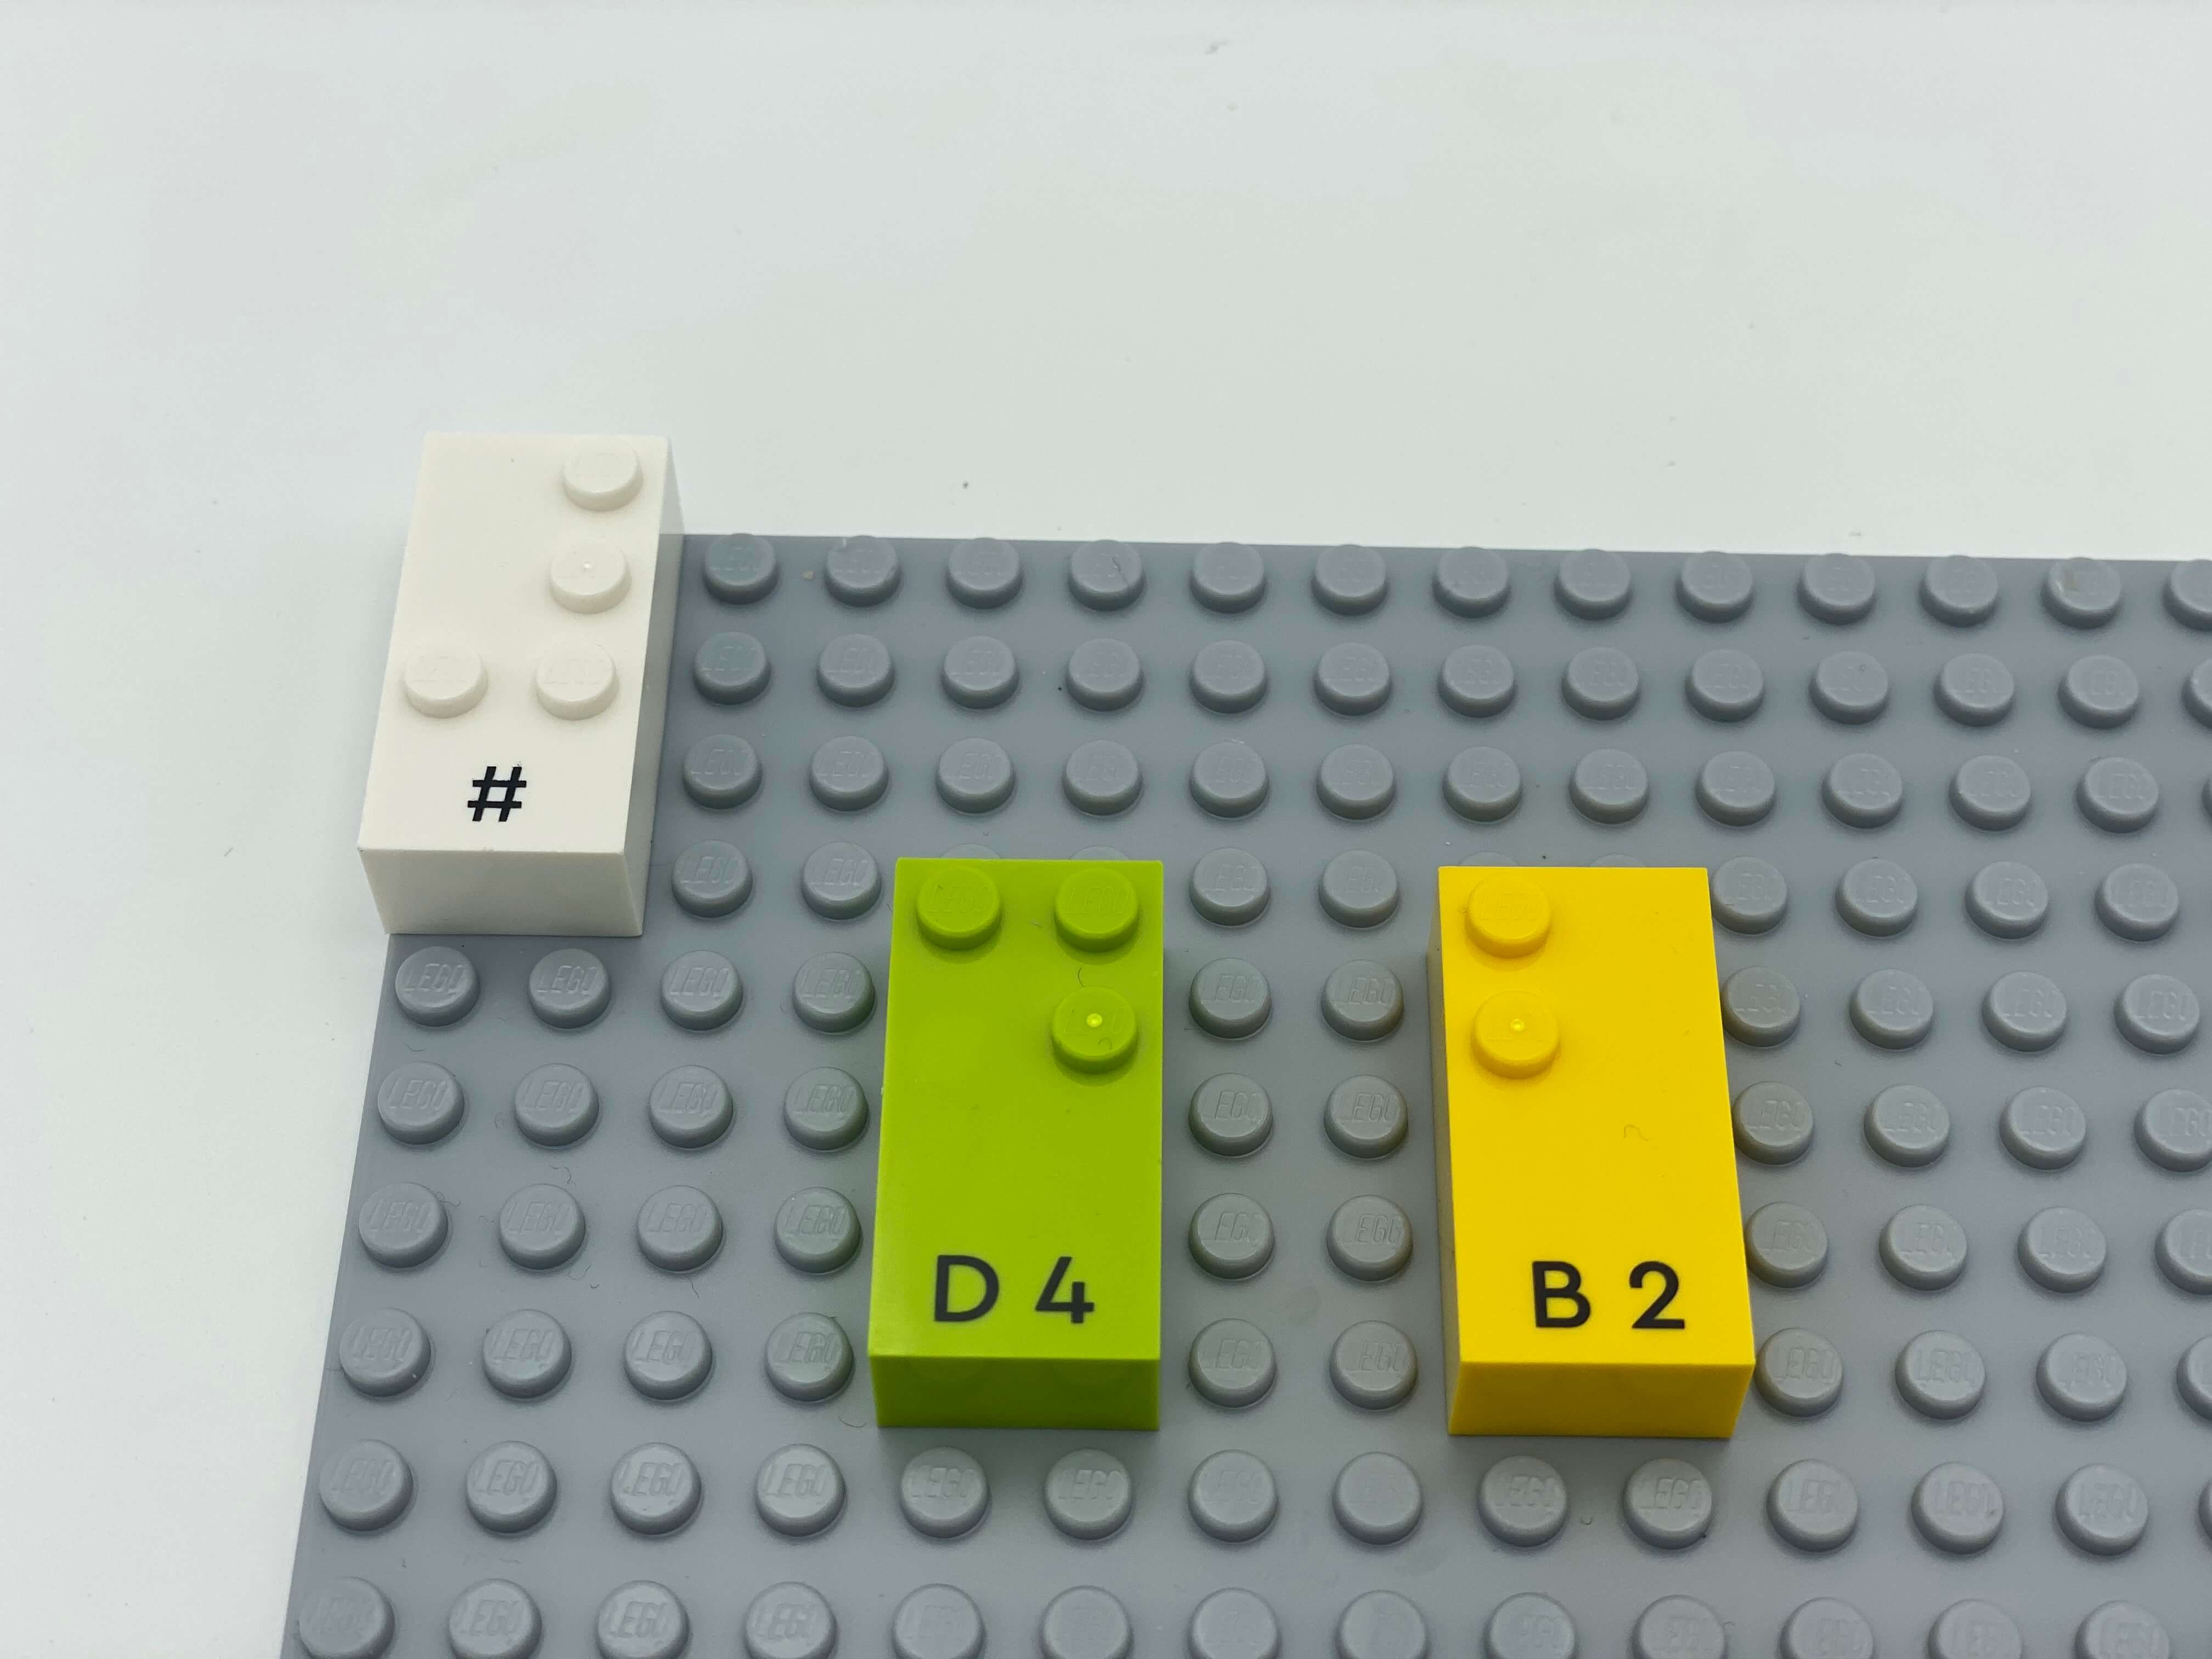 Number brick sign, number bricks 4 and 2 on the base plate.